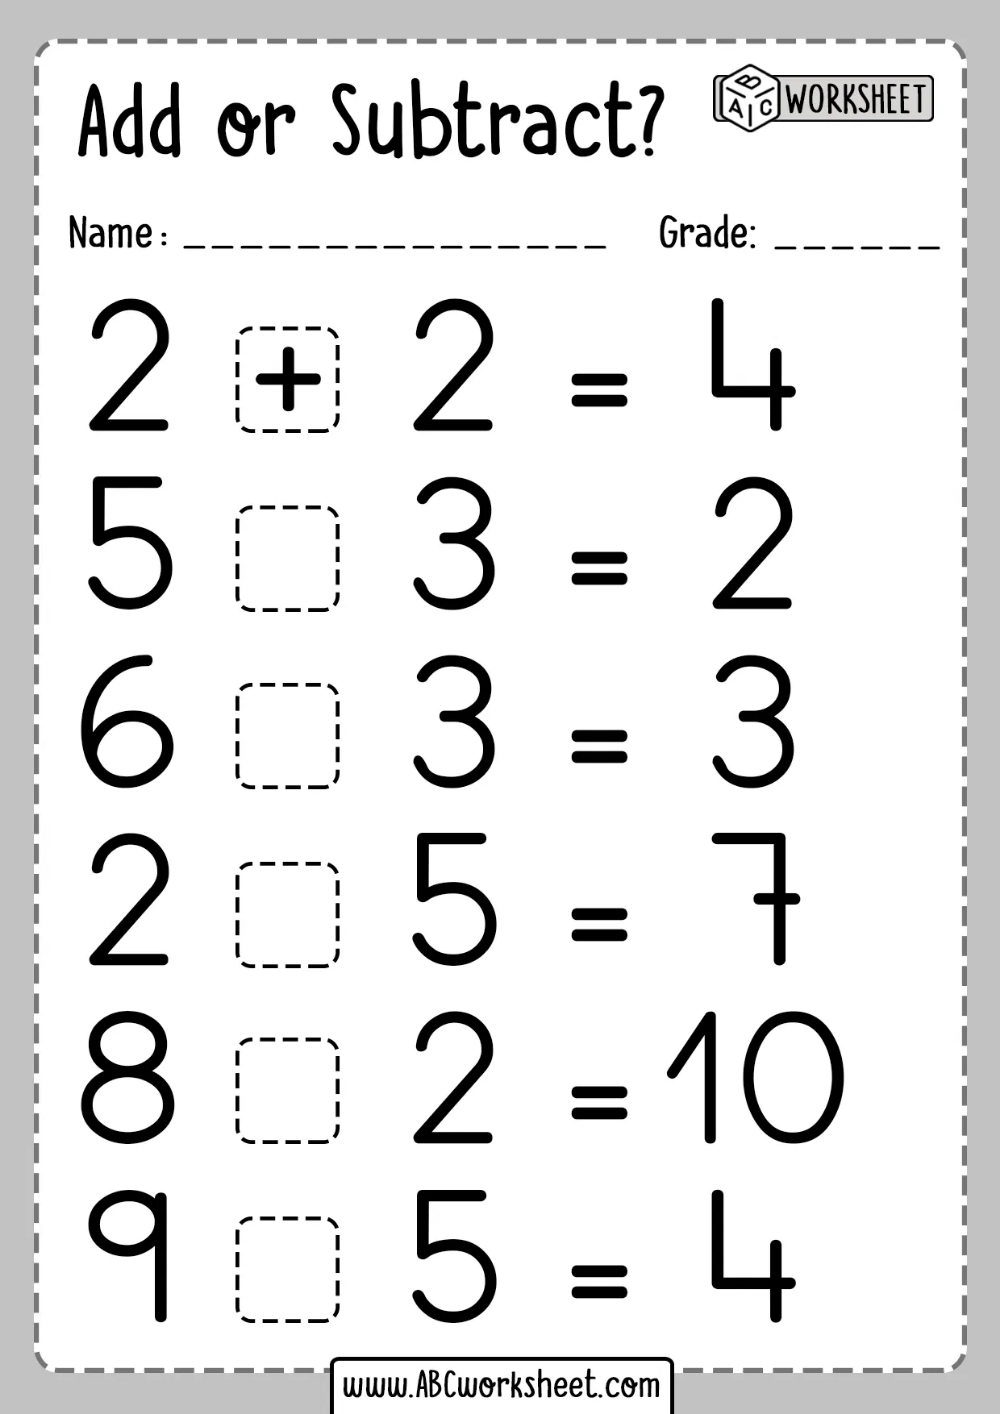 Addition and Subtraction worksheets   Addition and subtraction worksheets [ 1414 x 1000 Pixel ]